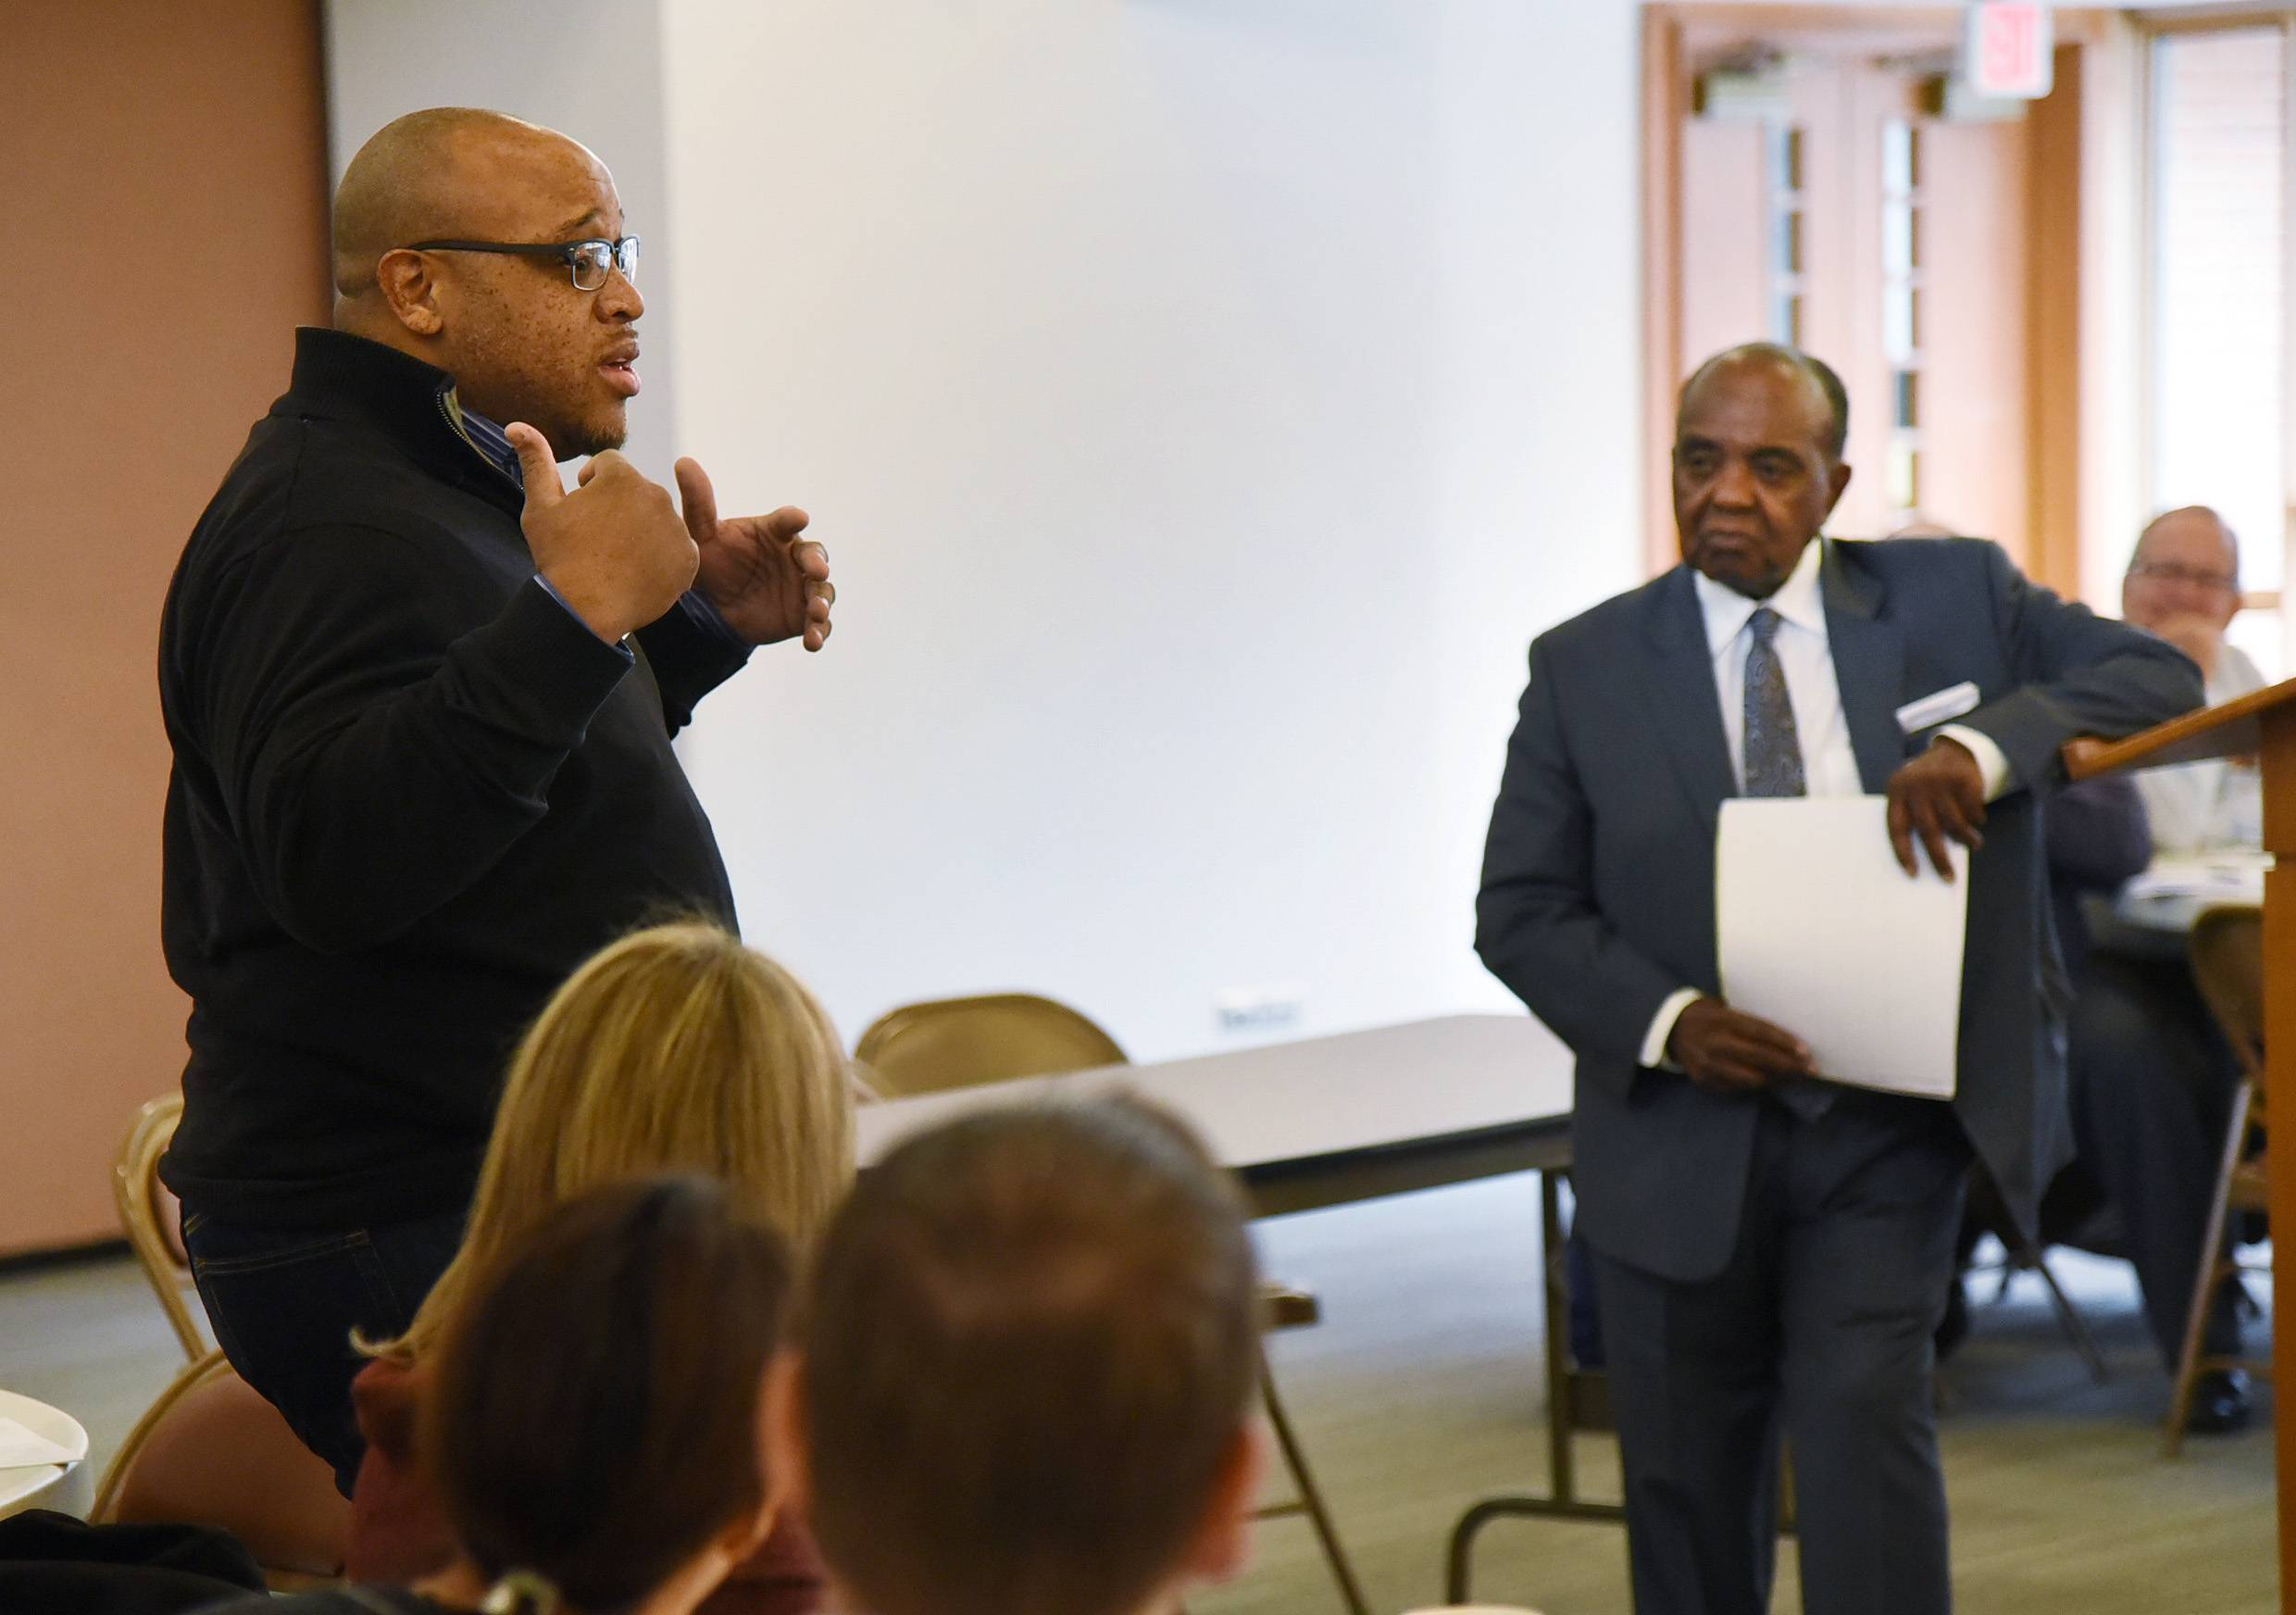 Allen Swilley of the United Palatine Coalition voices his opinions with Northwest suburban community leaders, clergy and residents who gathered at Our Savior's Lutheran Church in Arlington Heights Friday to talk about America's racial divisions.